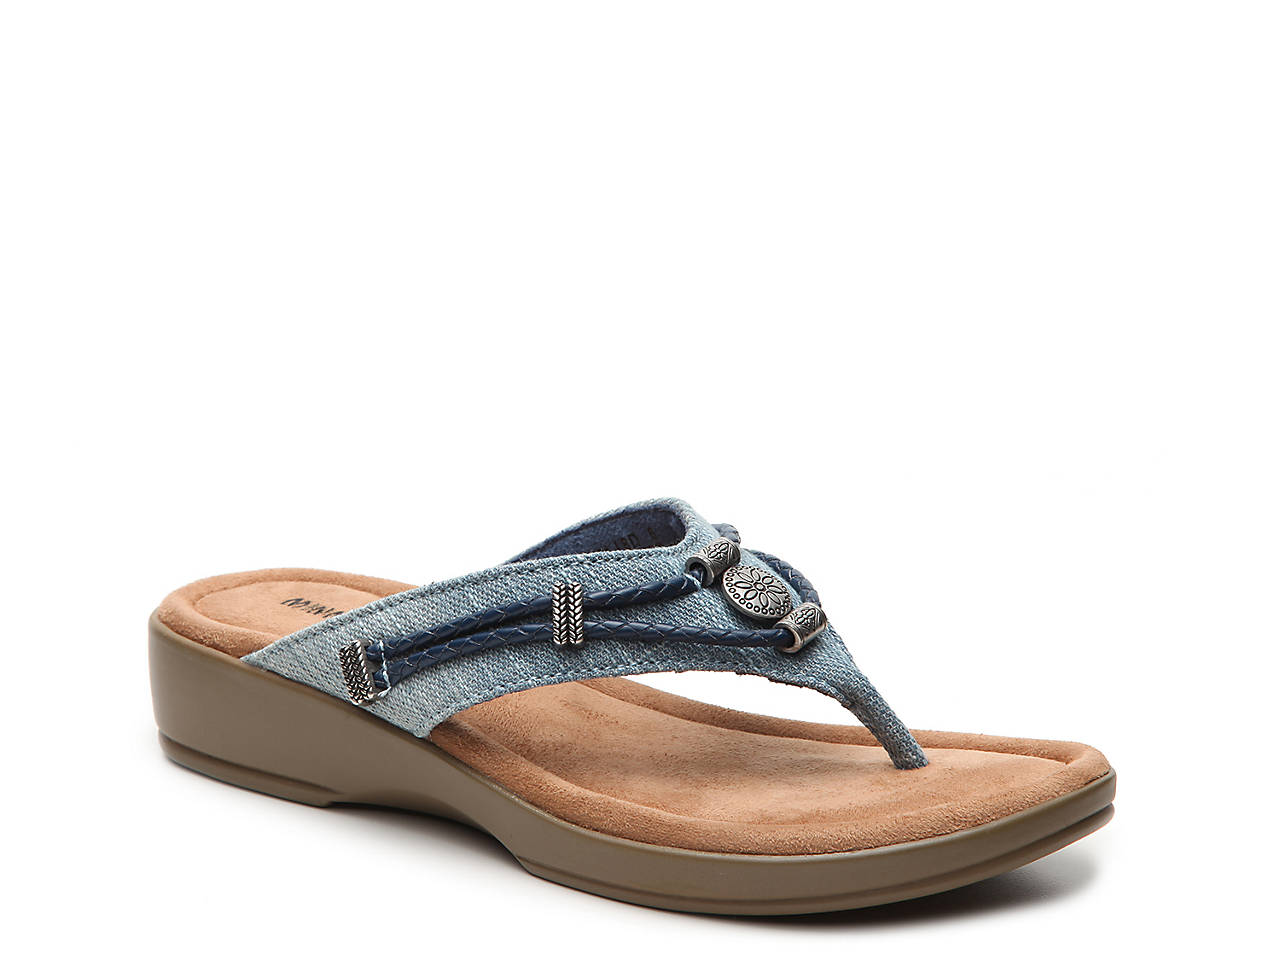 Humate Virginia Slipper In Beige Loafers You Can Sells In All Years Outlet Store